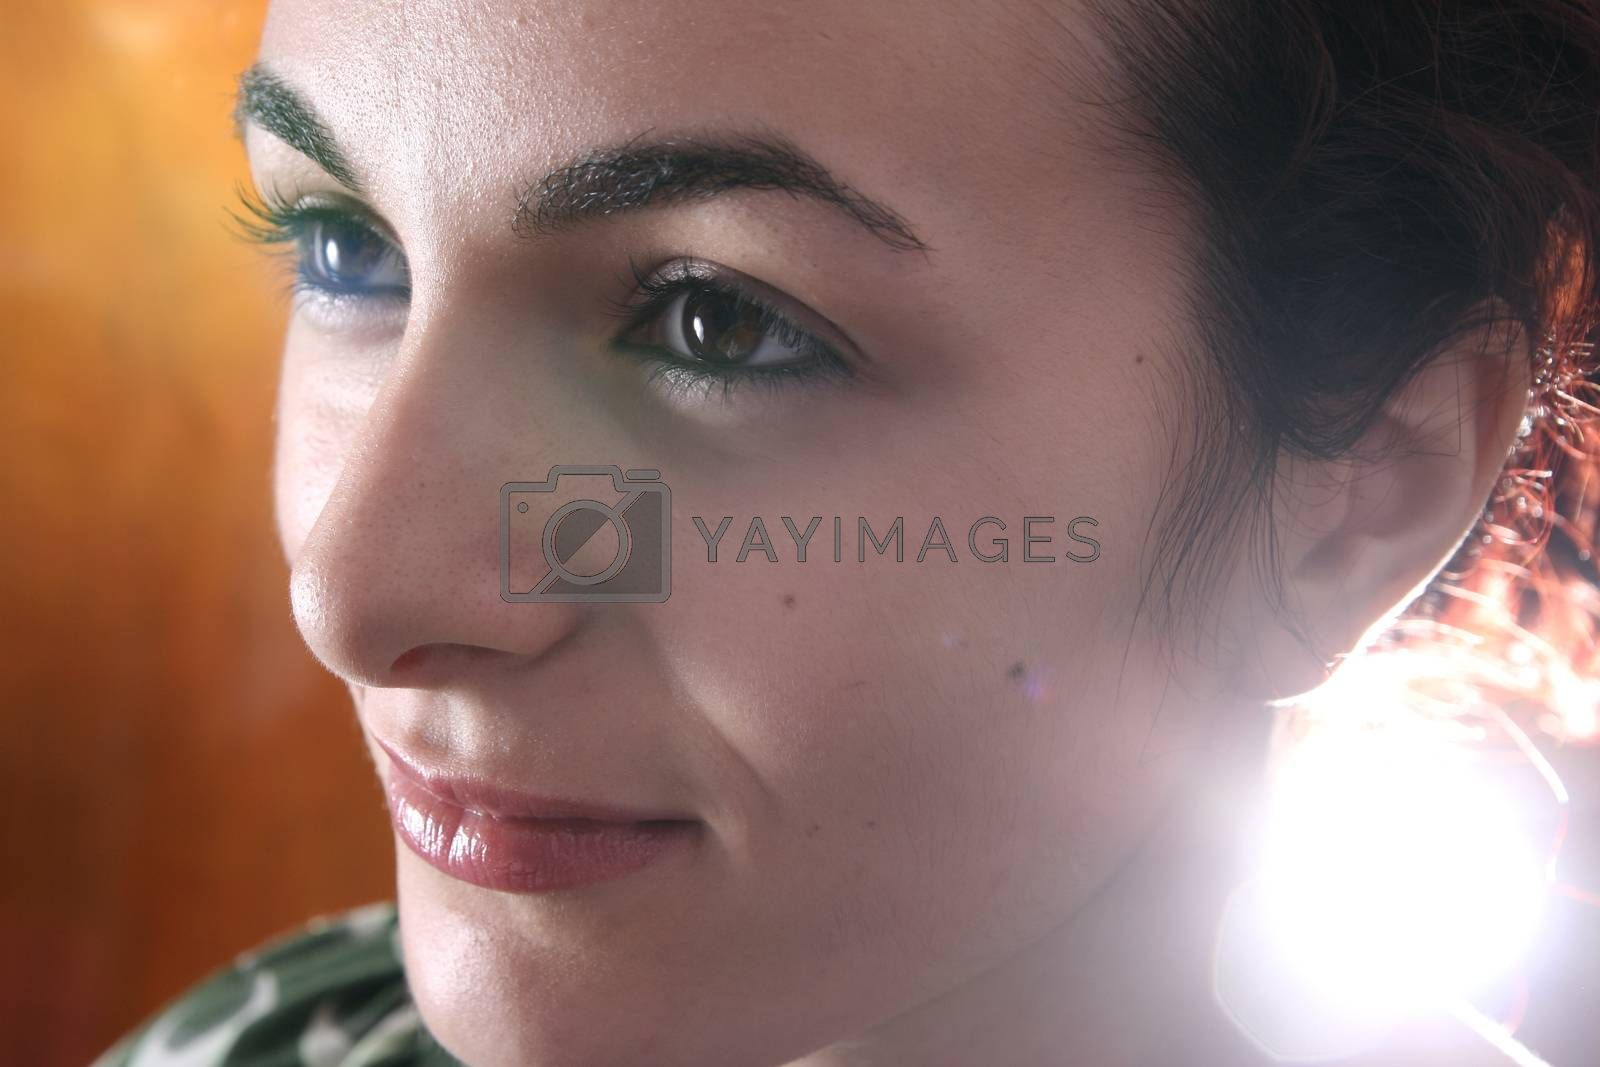 Beautiful face of woman. For more photos with this model fell free to visit my portfolio !